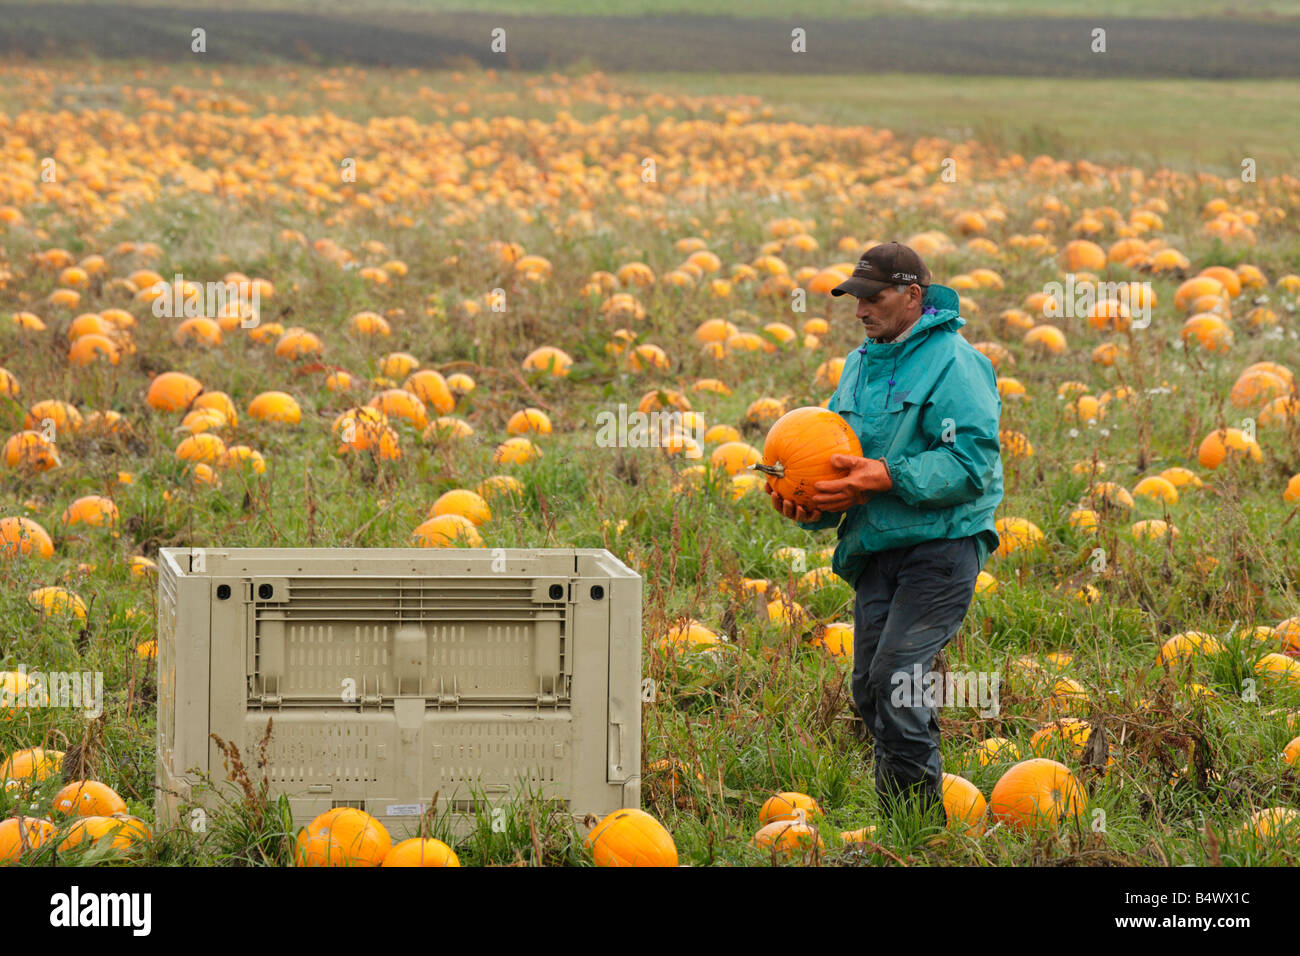 Agricultural Jobs Stock Photos & Agricultural Jobs Stock Images - Alamy